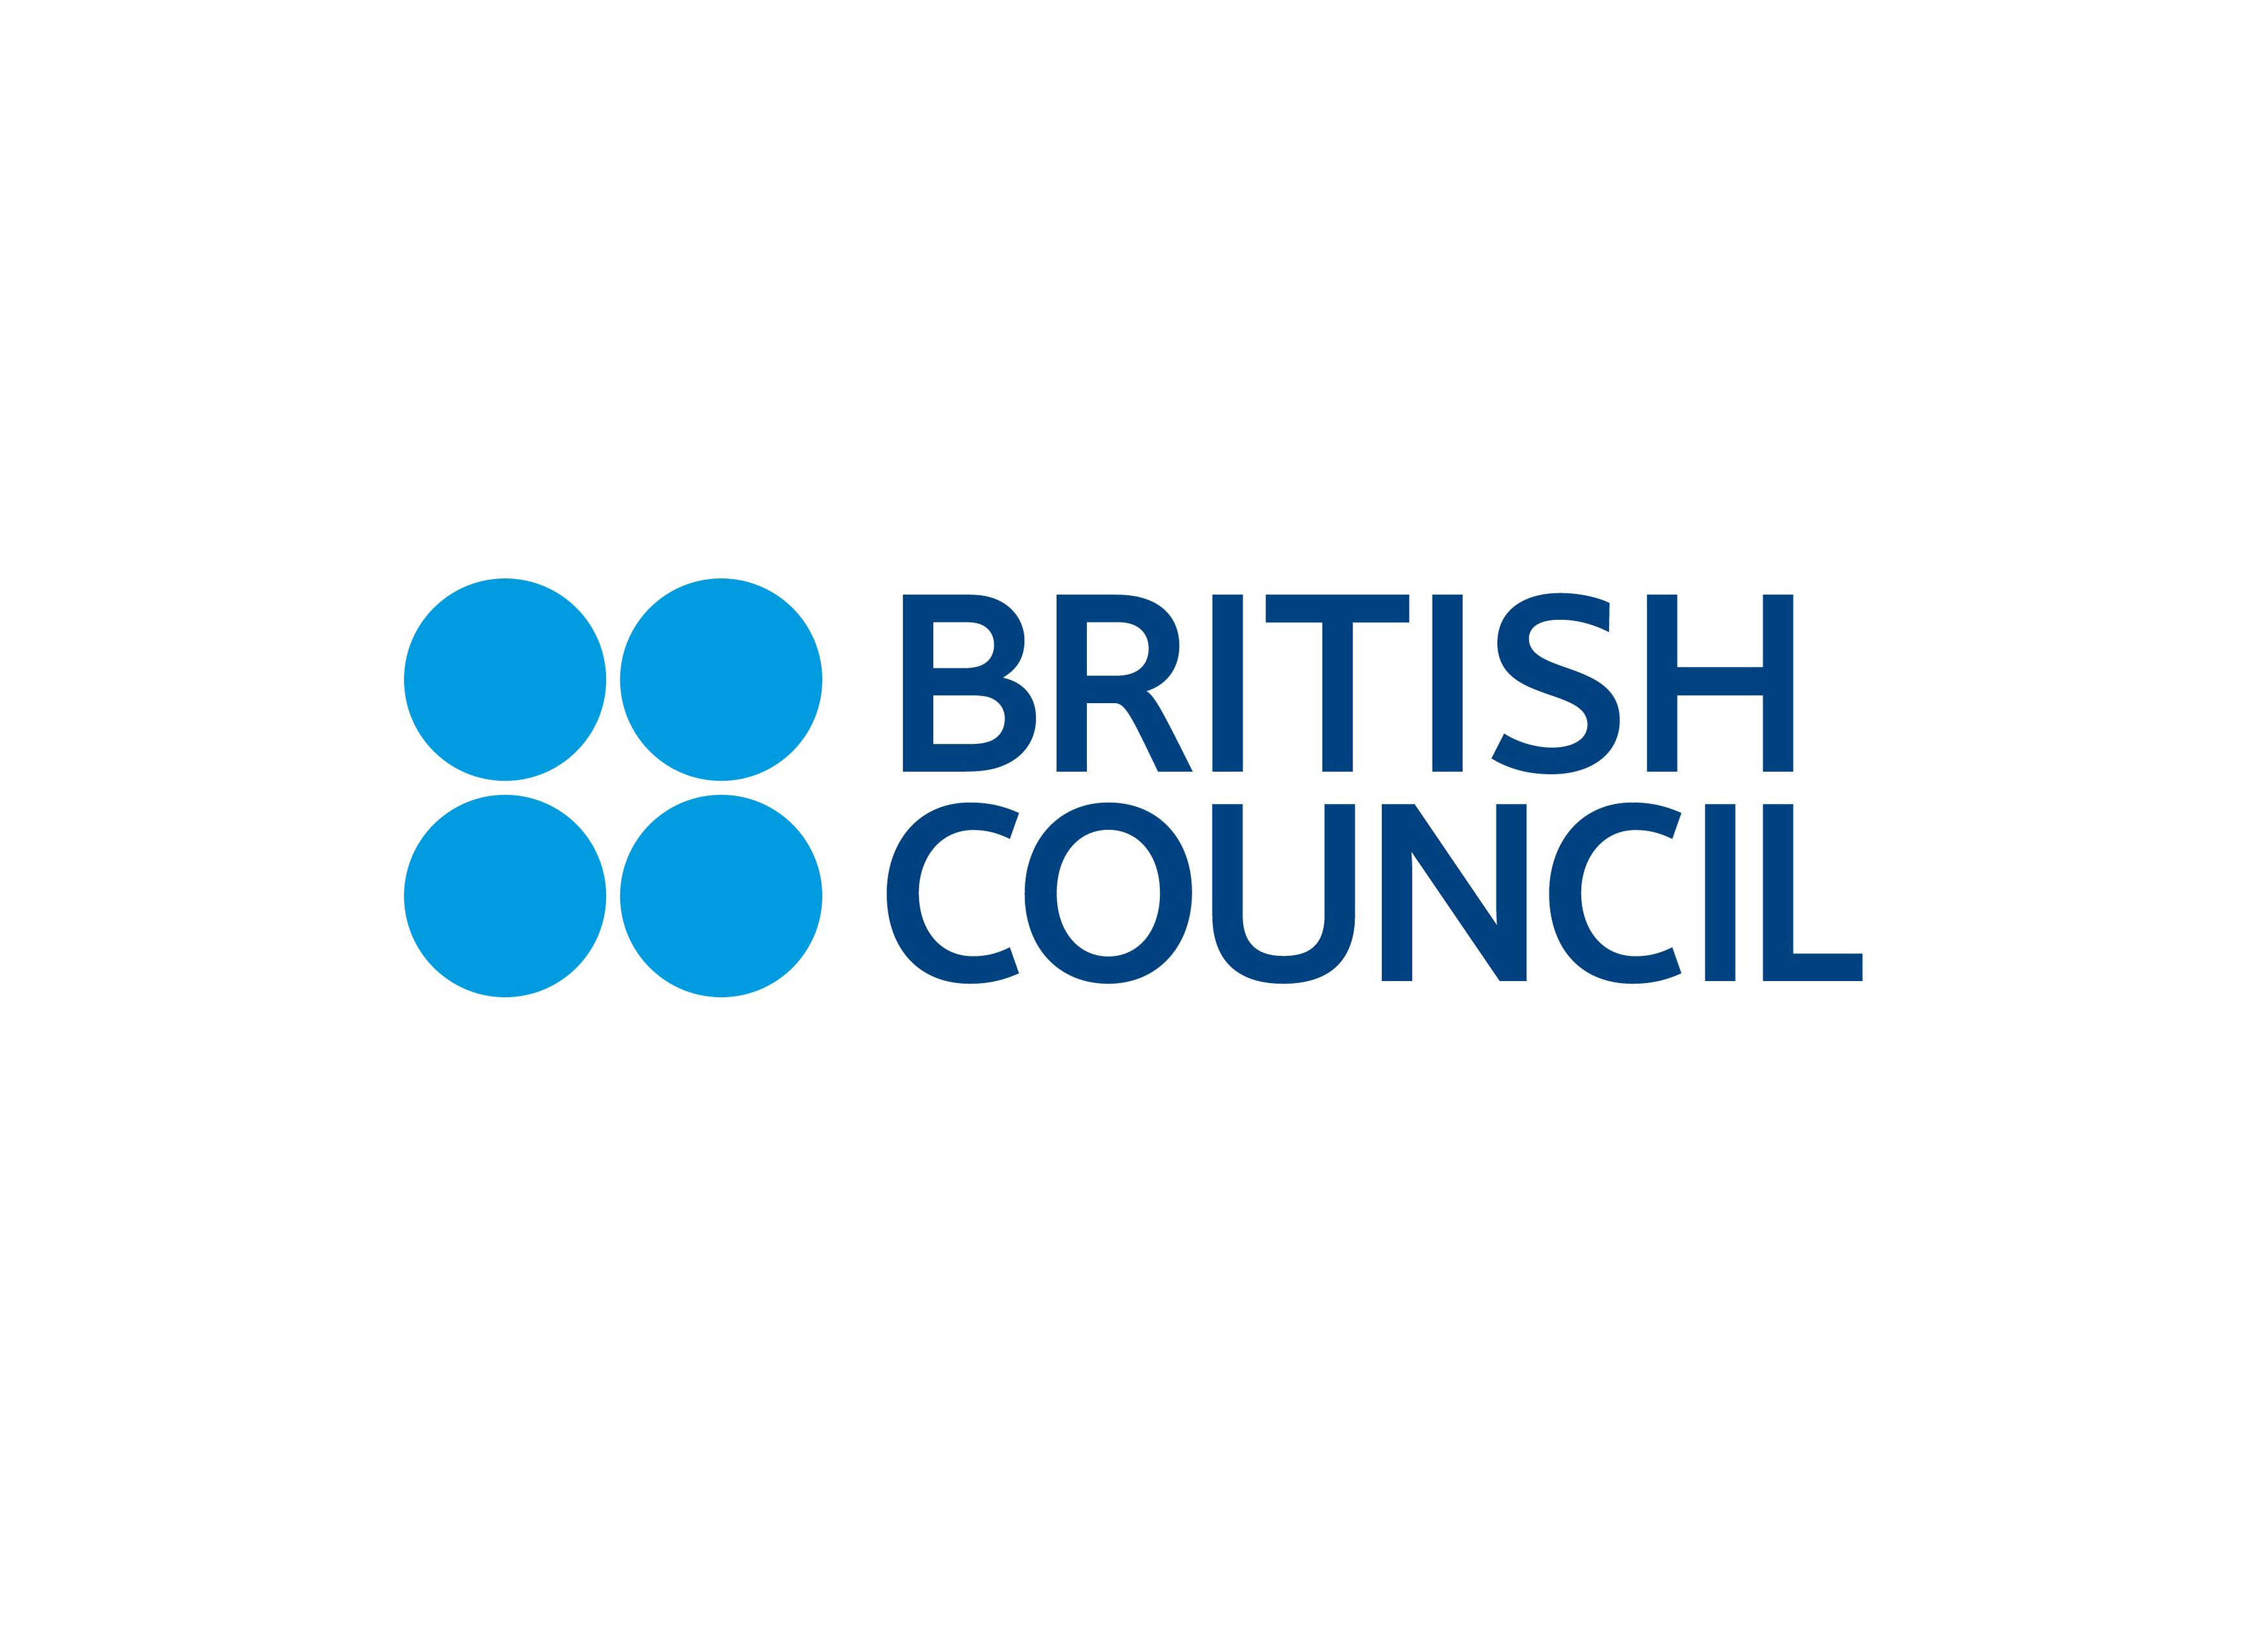 British Council-English Logo